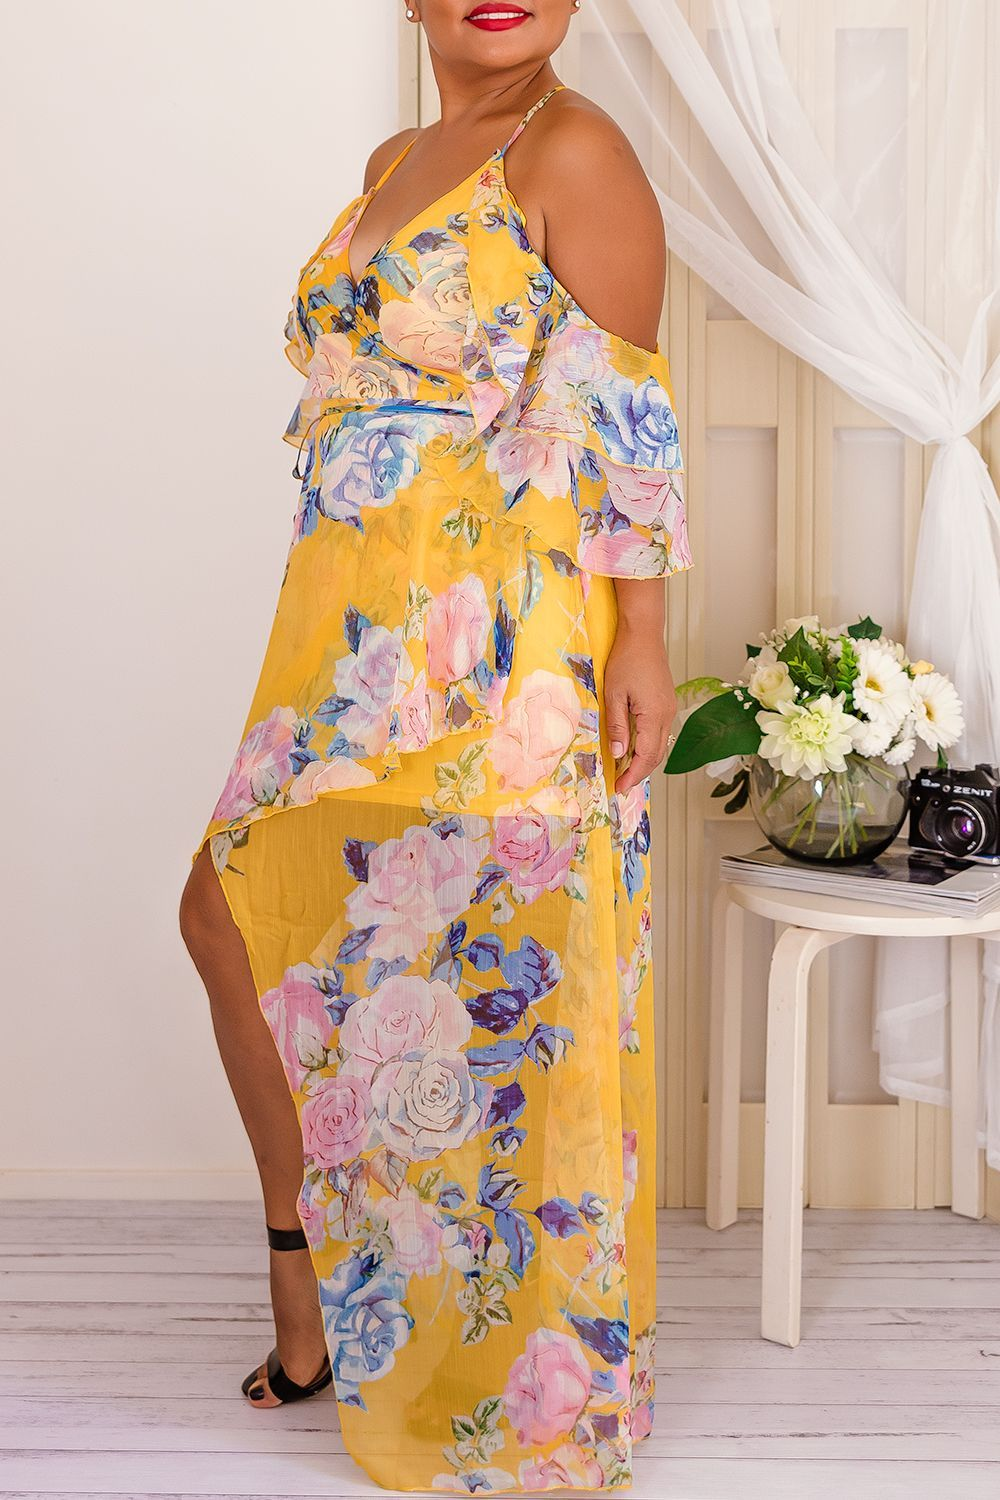 - Sheer Yellow Floral Dress - Light weight  - Ruffle Layered  - Cold Shoulder Dress with Tie at Waist - Elegant racer back feature